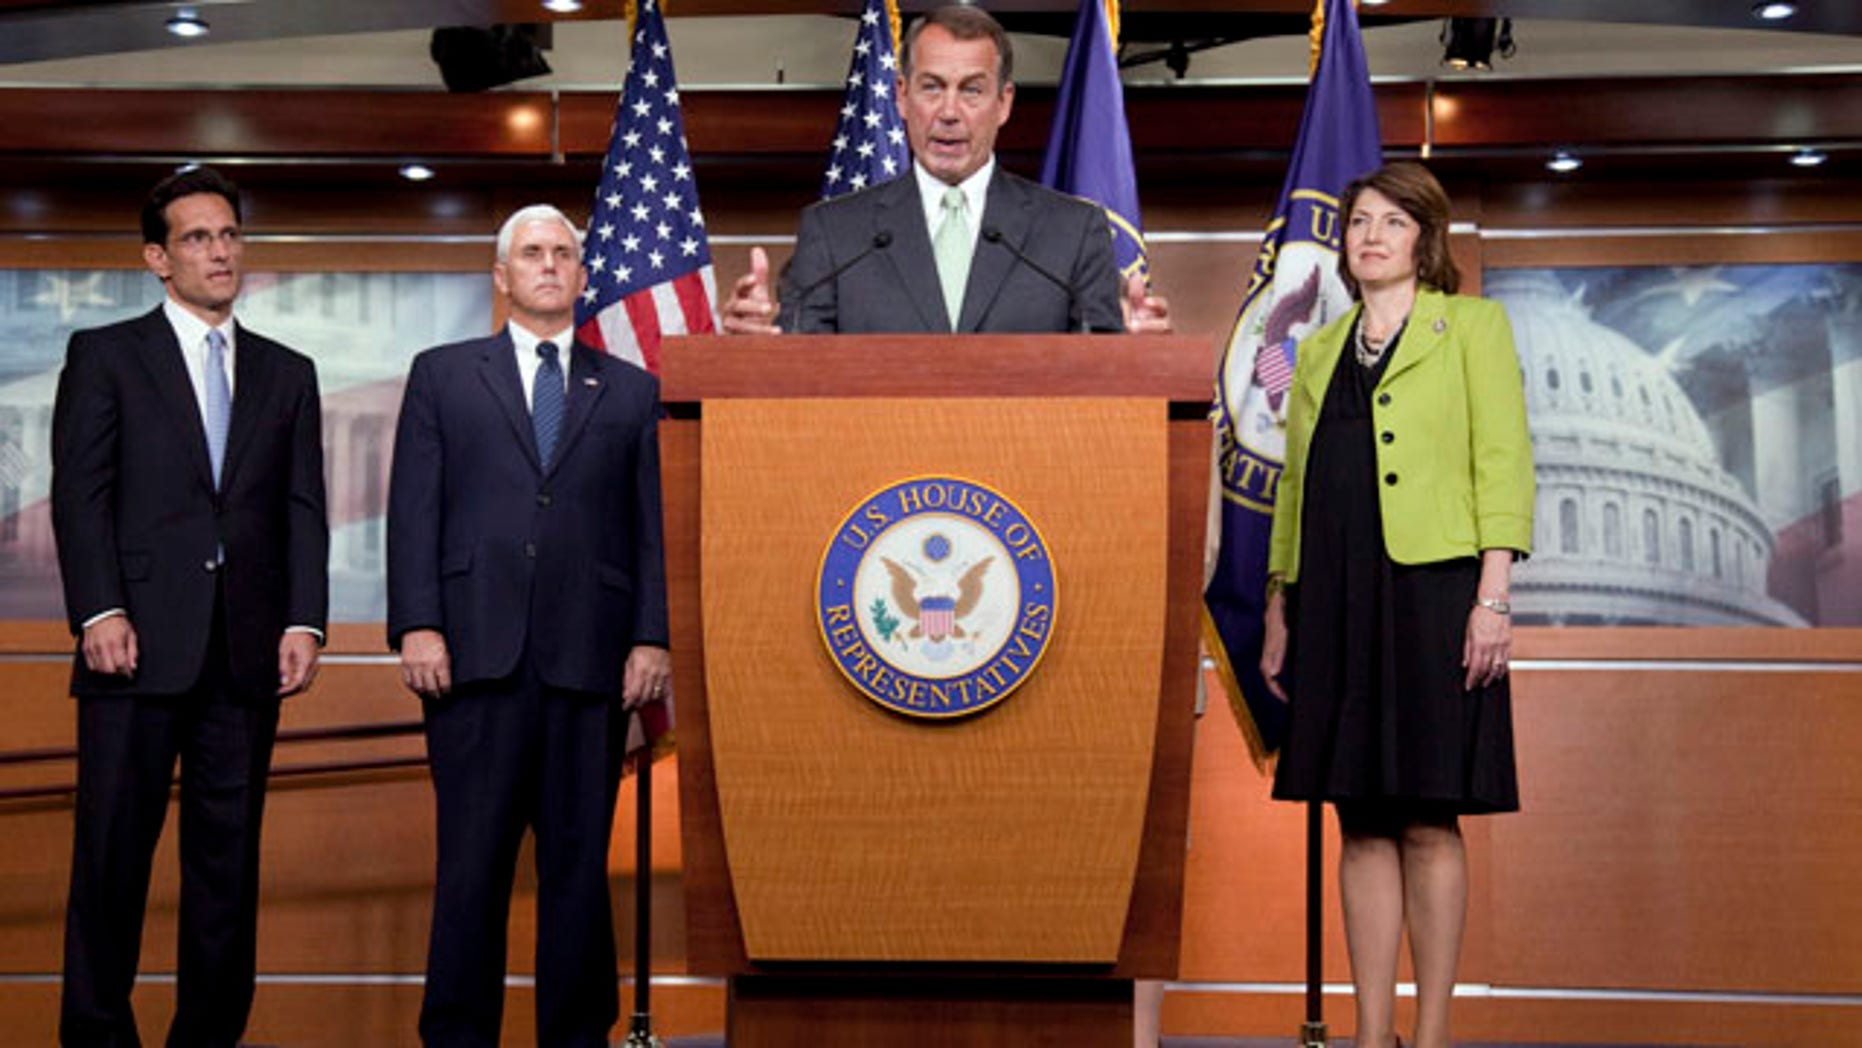 Sept. 15: House Minority Leader John Boehner of Ohio, gestures during a news conference on Capitol Hill in Washington. From left are, House Minority Whip Eric Cantor of Va., Rep. Mike Pence, R-Ind., Boehner, and Rep. Cathy McMorris Rodgers, R-Wash.